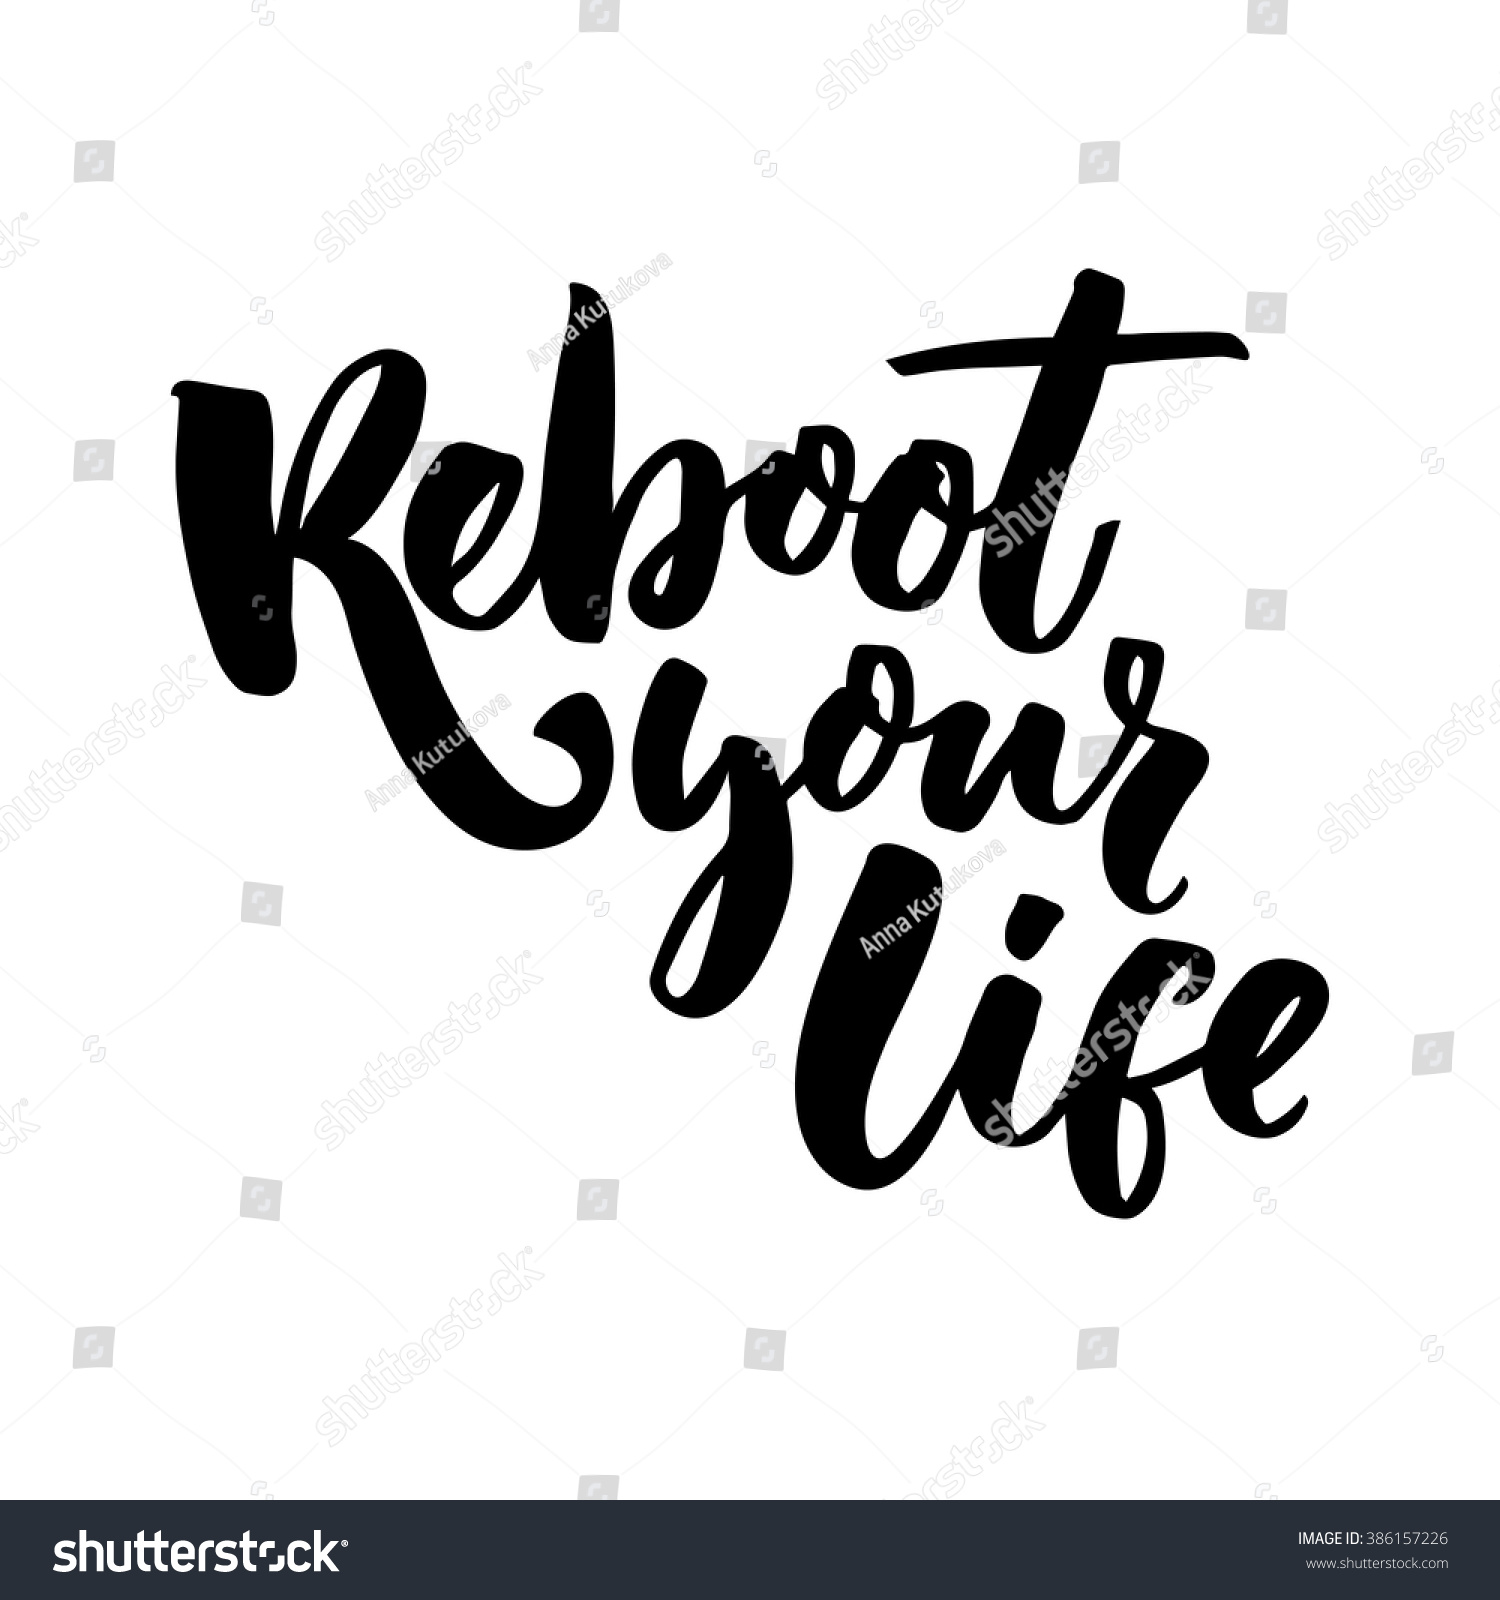 Life Inspirational Quotes Reboot Your Life Inspirational Quote Motivational Stock Vector